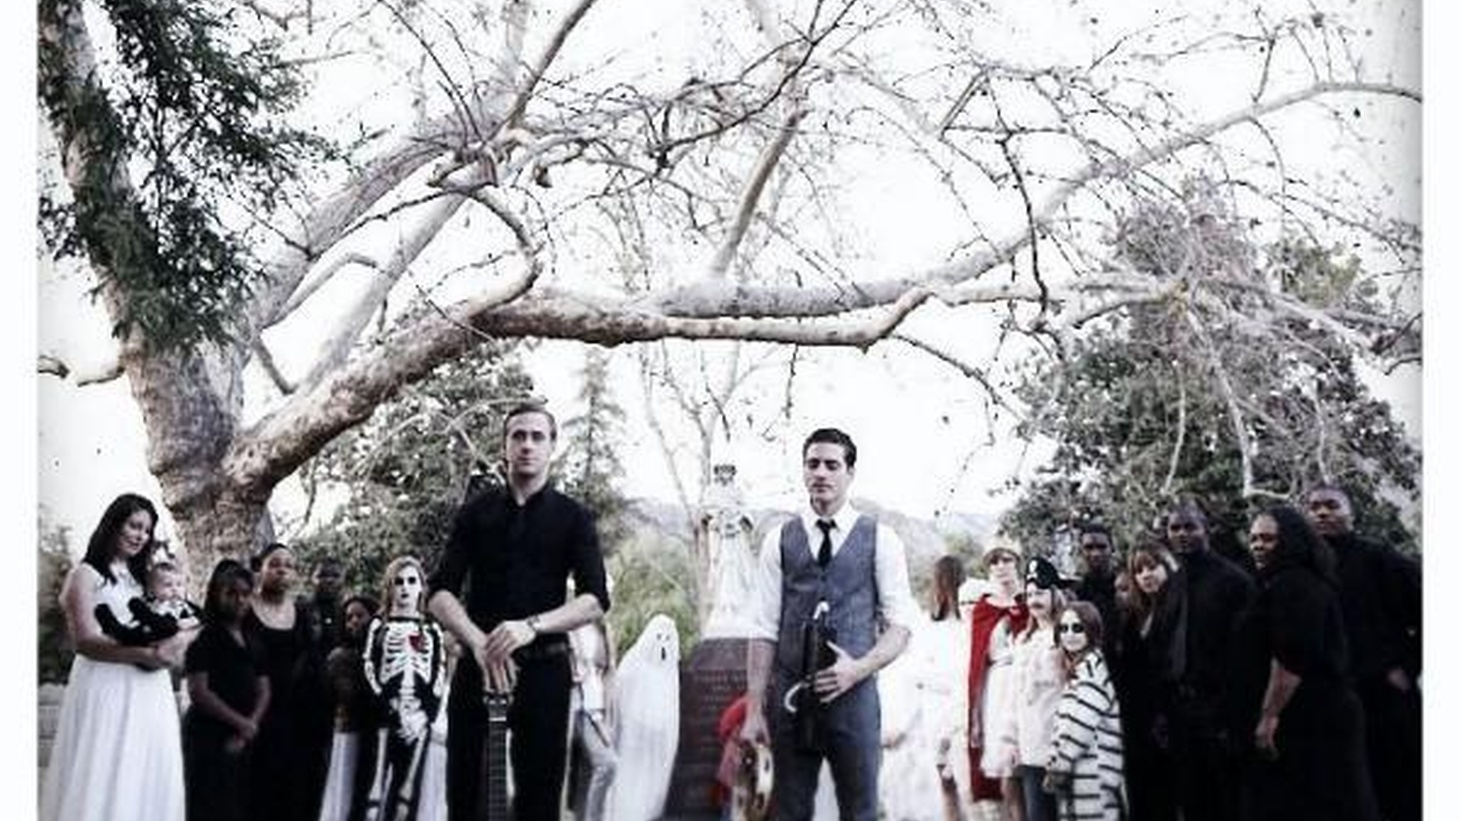 """Bonding over a mutual appreciation of ghosts and all things haunted, Ryan Gosling and Zach Shields created Dead Man's Bones. Today's Top Tune is """"Pa Pa Power (Gospel Remake)."""" It features Silverlake's Conservatory Children's Choir and was captured on a 7-inch recording by IAMSOUND as part of their LA Collection showcasing local talent."""